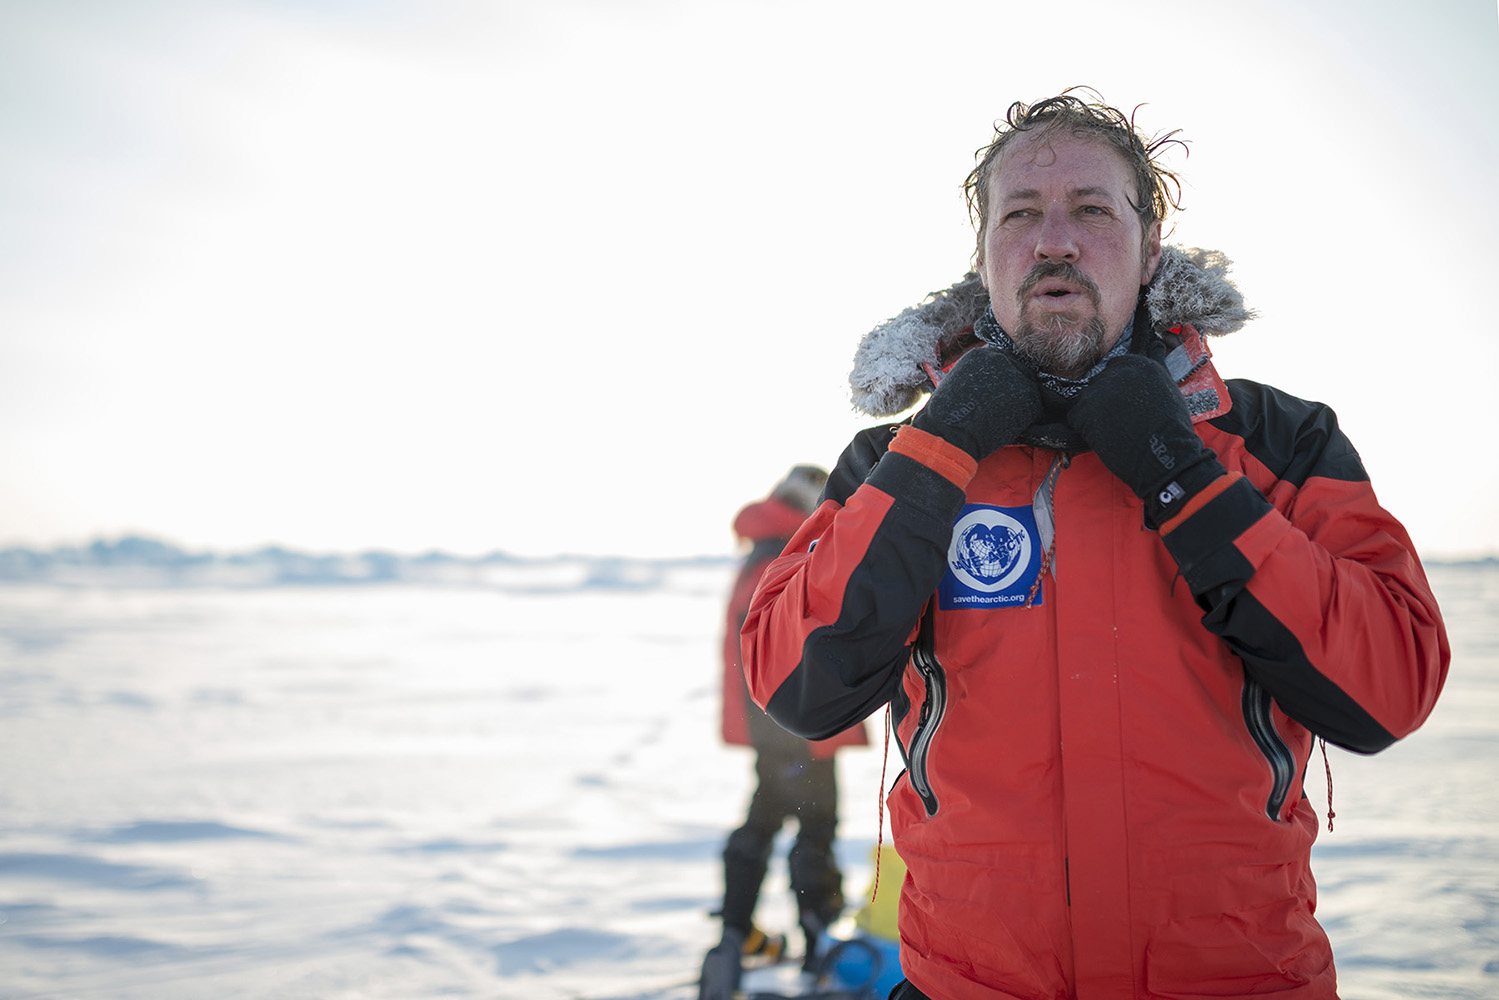 Adam Shore, Greenpeace Lead logistics coordinator, takes a break during the trek towards the North Pole.